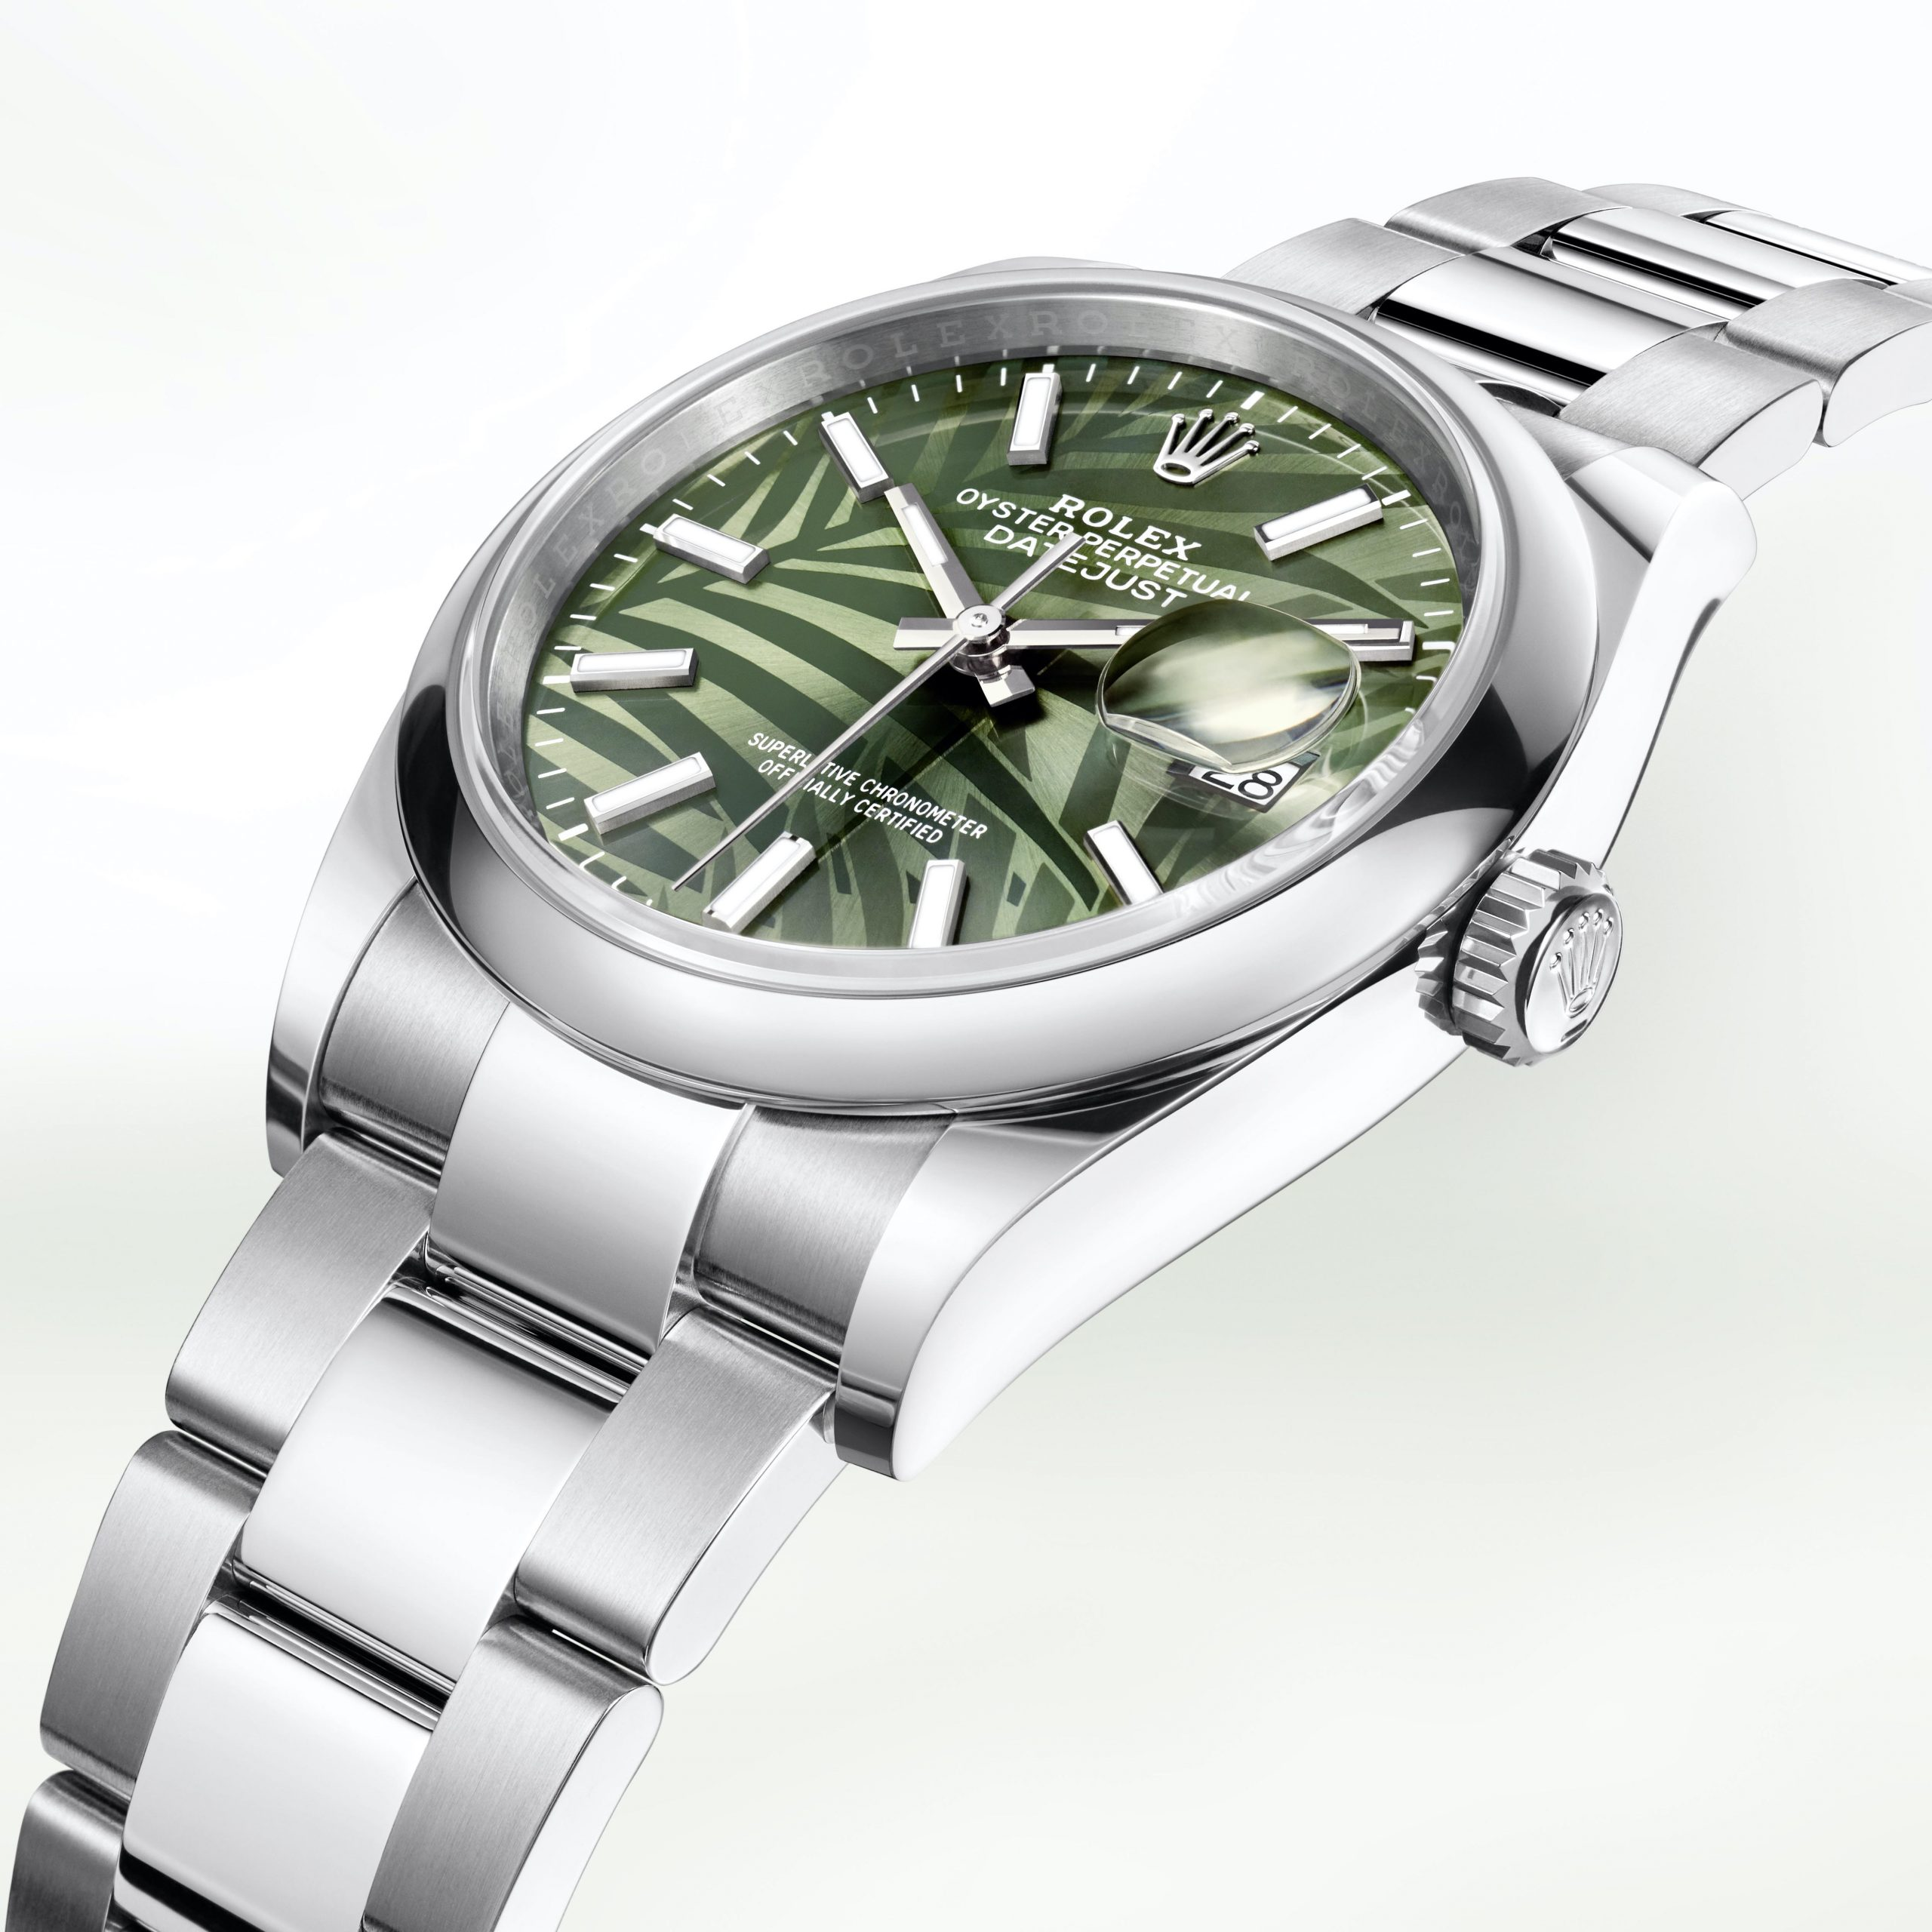 đồng hồ Oyster Perpetual Datejust 36 5